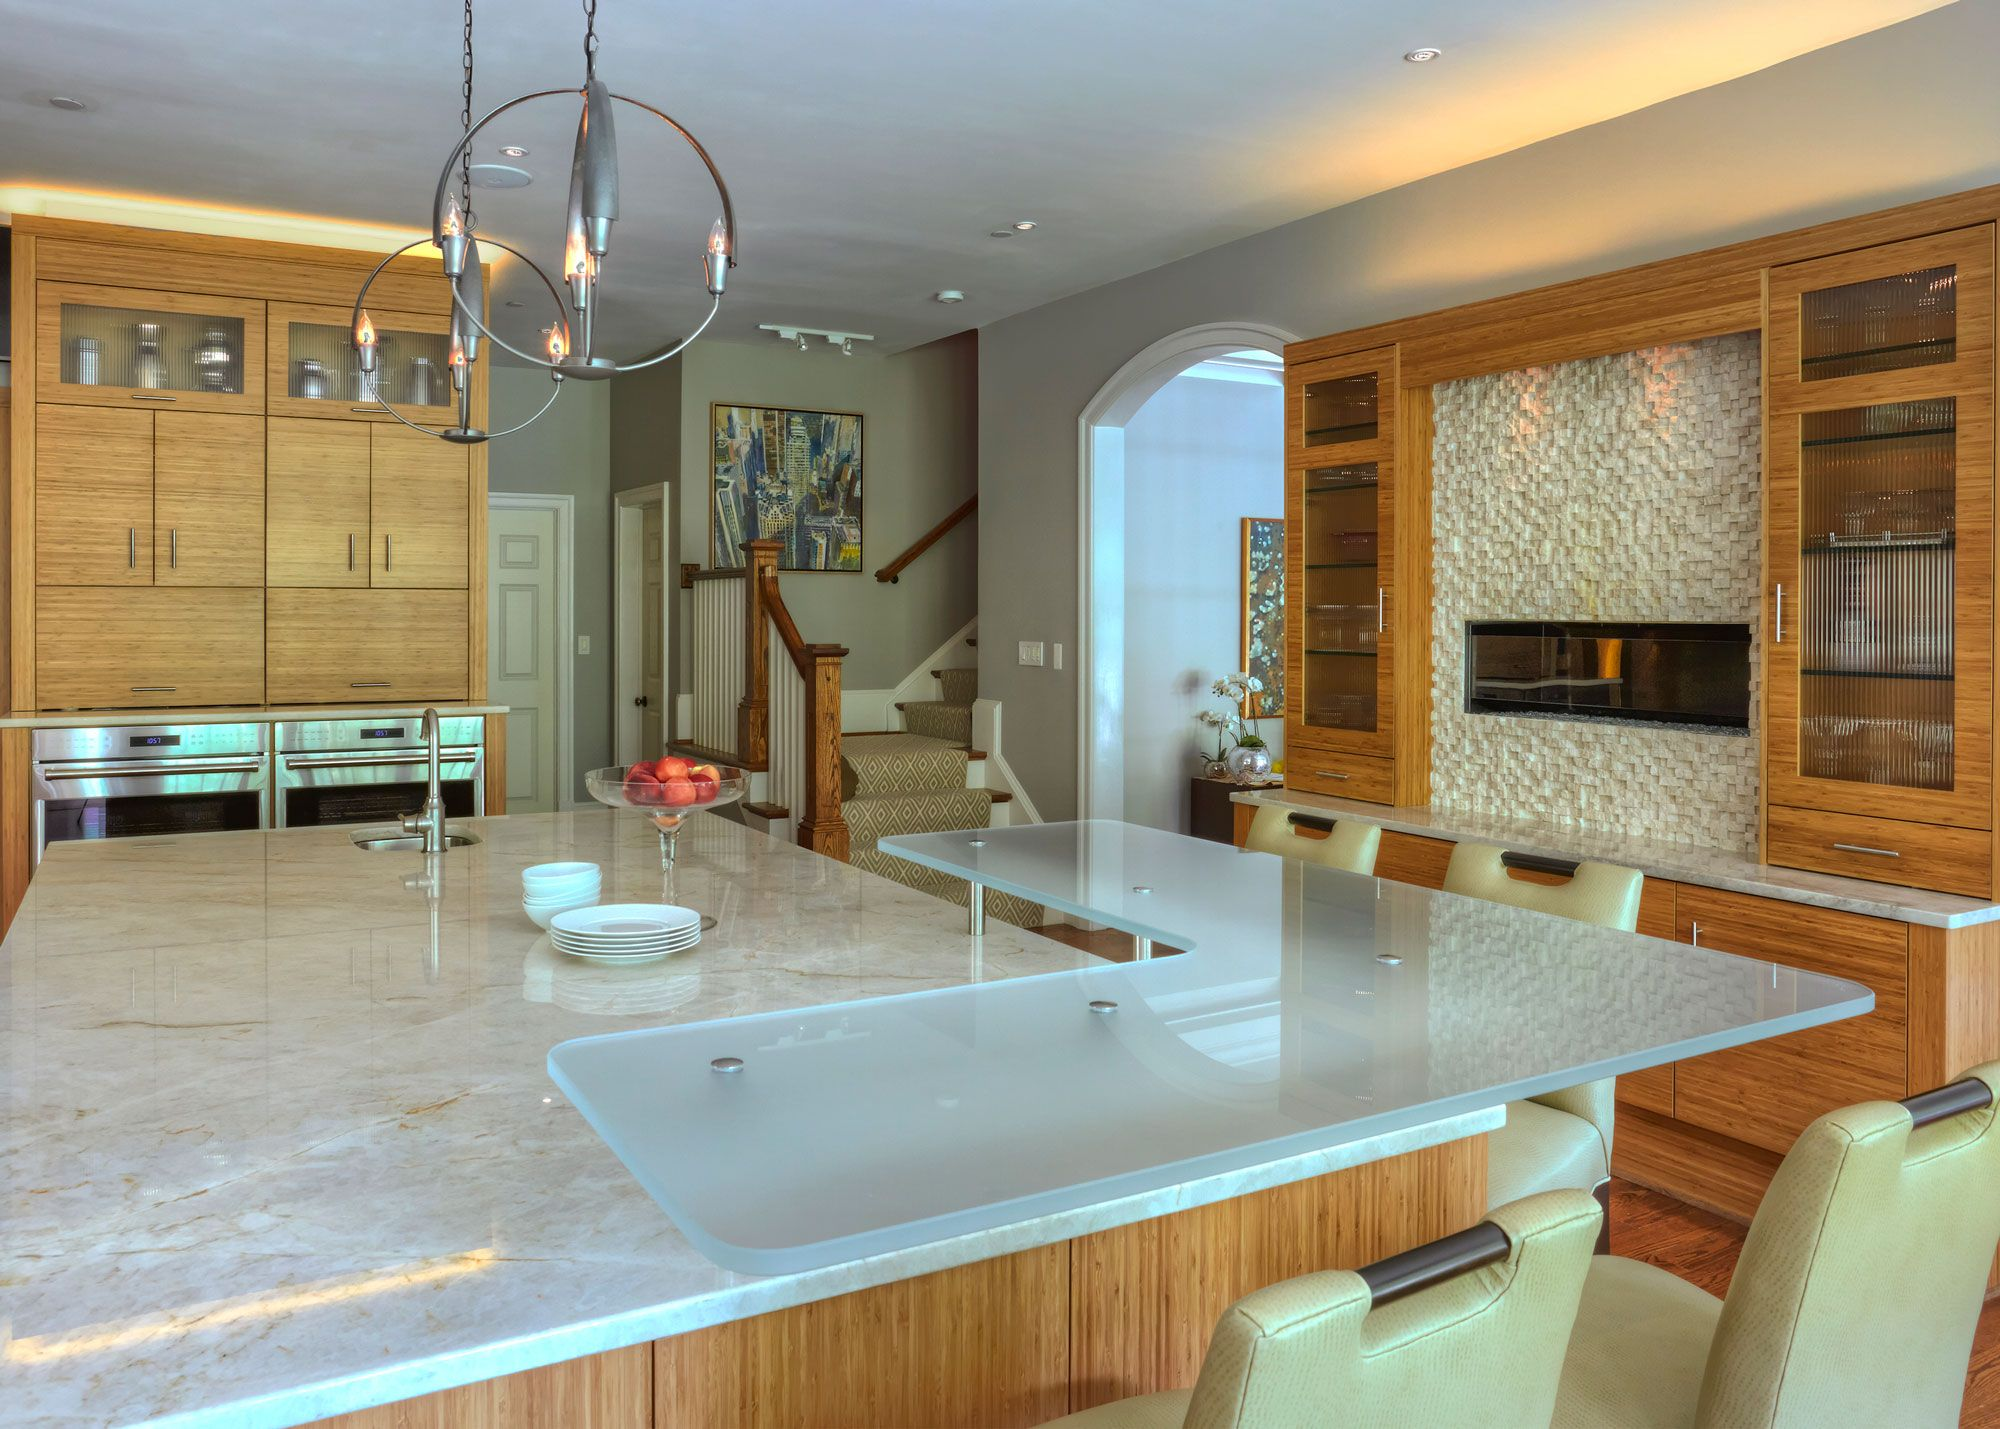 large kitchen first place name mark t white ckd cbd photo mike kaskel design on t kitchen layout id=83992